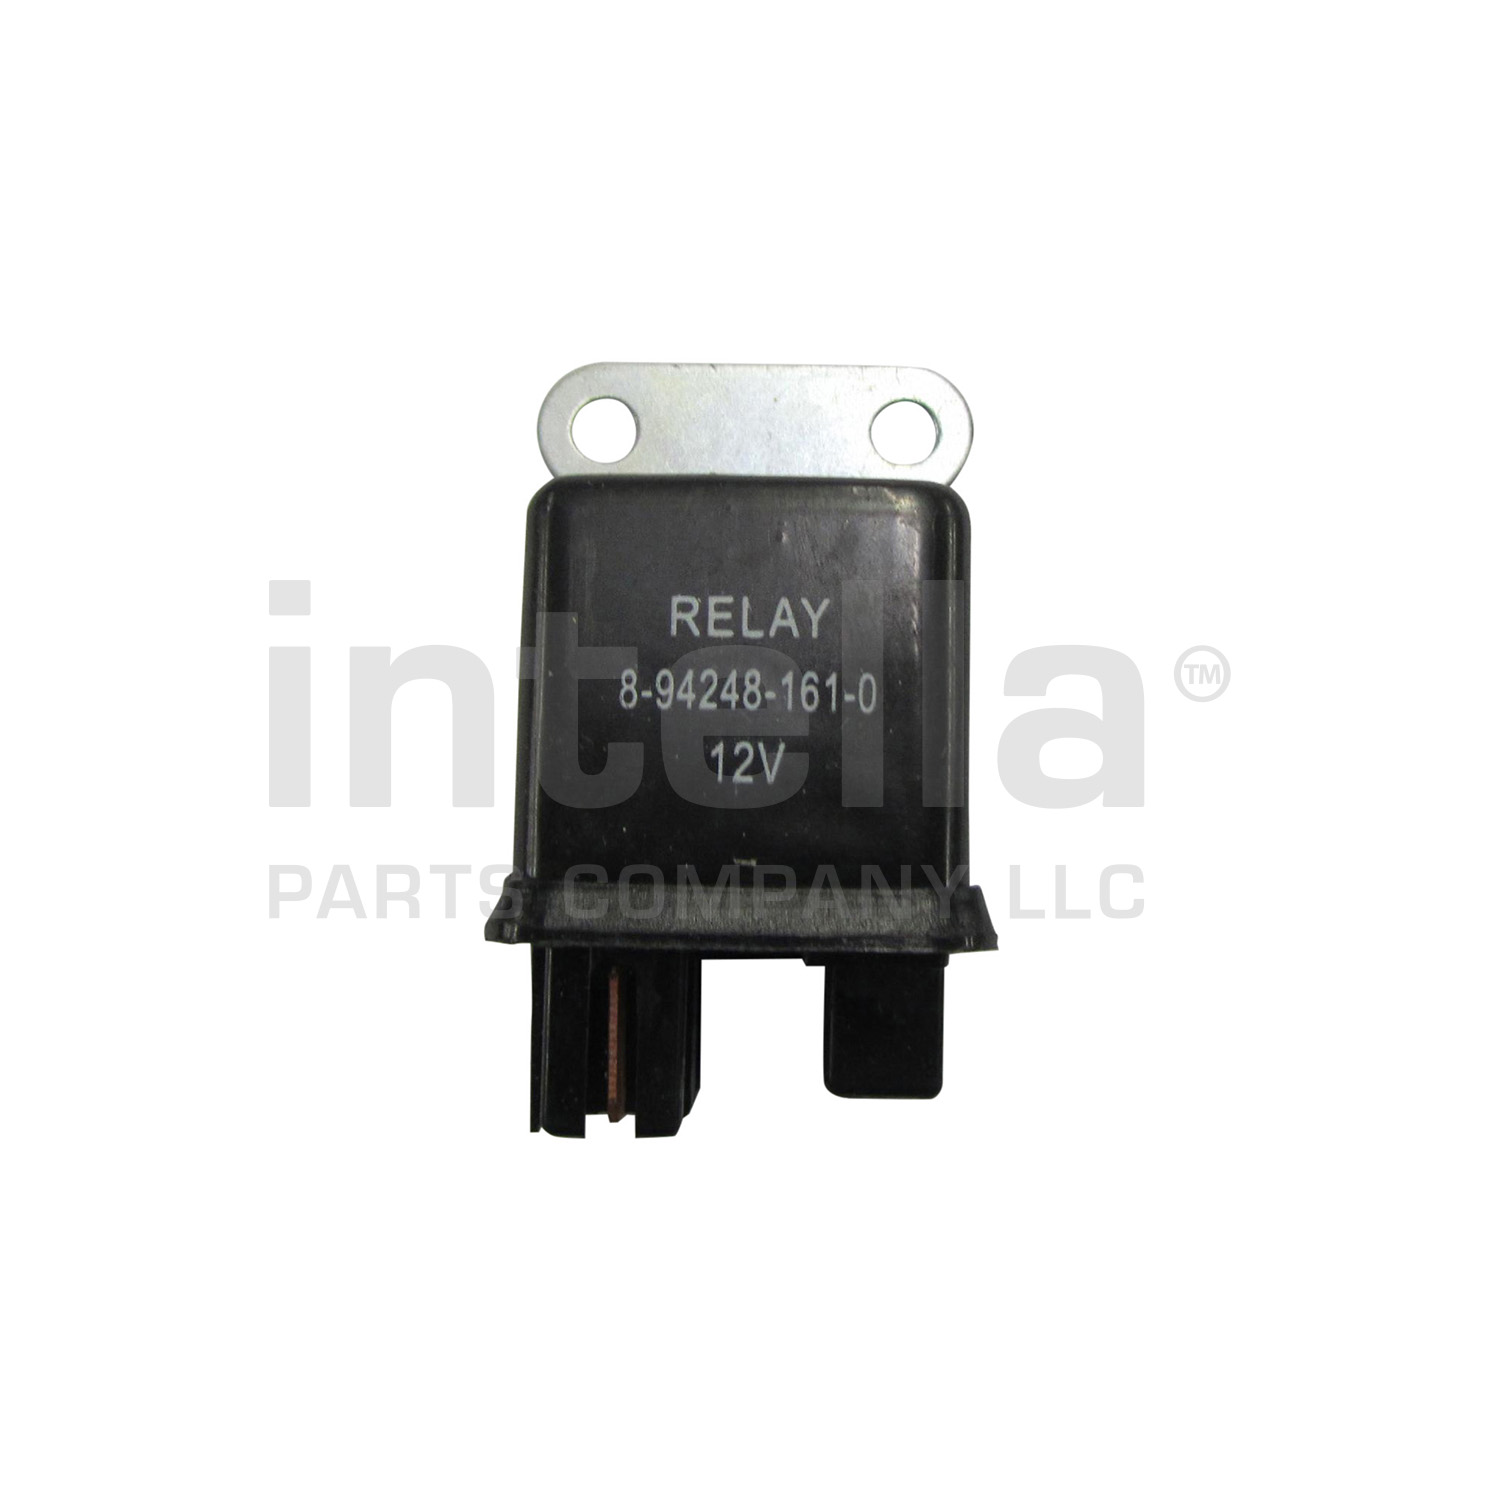 caterpillar mitsubishi a000024996 relay assembly glow plug. Black Bedroom Furniture Sets. Home Design Ideas